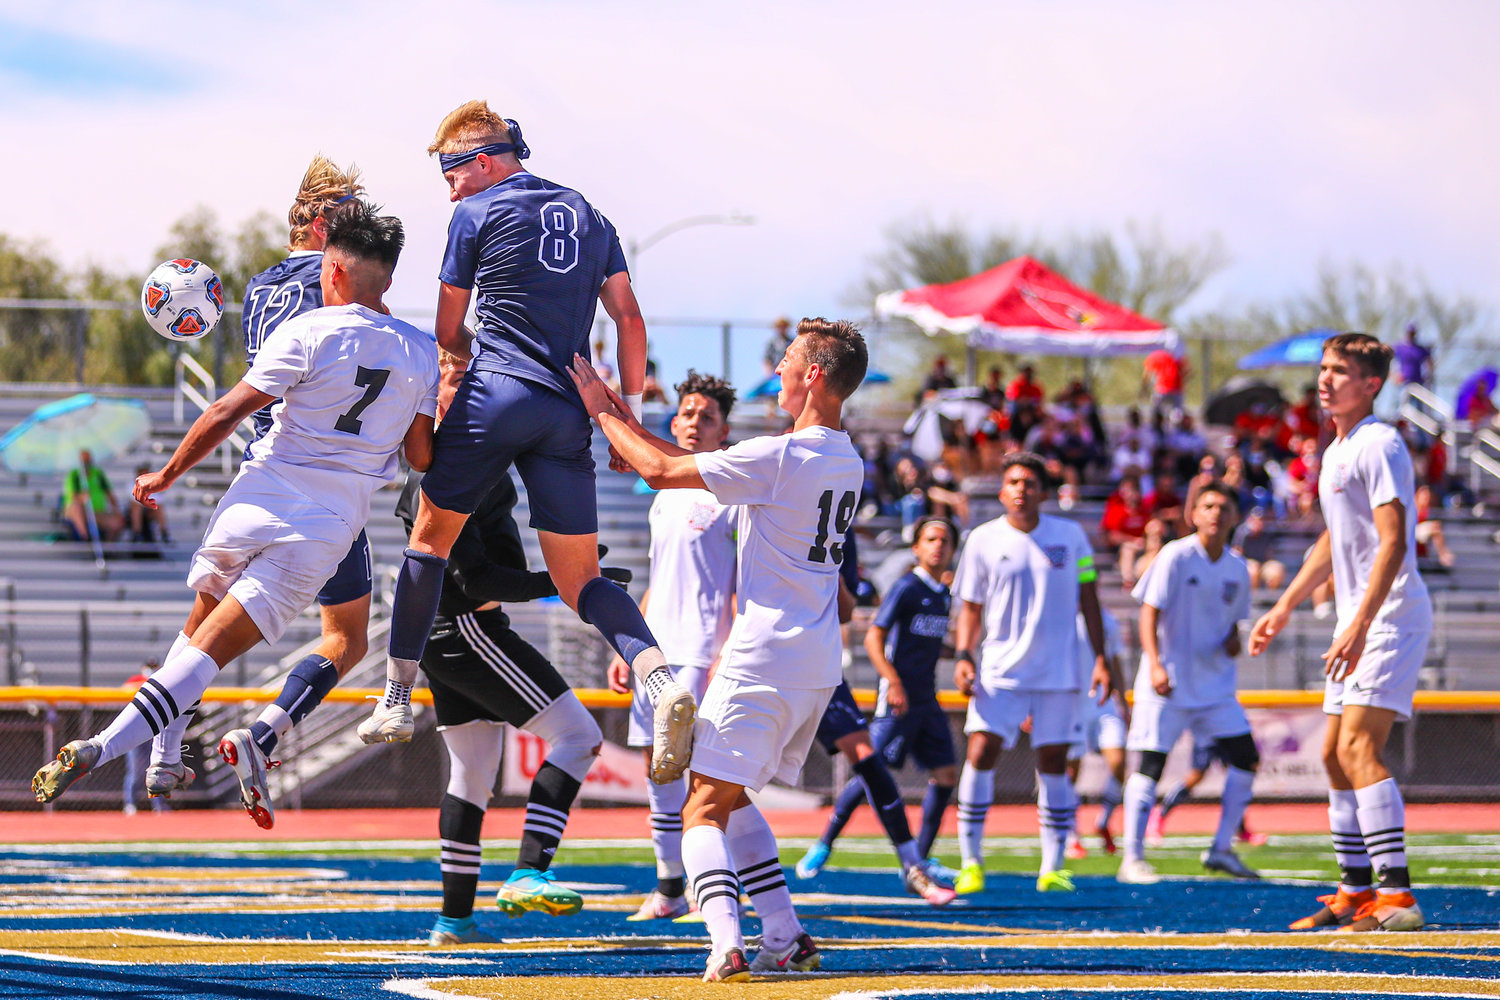 Casteel senior defender Dillon Crowder emerges above the crowd including Ironwood senior defender Jesus Medina (#7) and Colts teammate Tristain  Hughes to head in a goal during the first half of the 5A boys soccer final March 20 at Desert Vista High School in Phoenix.